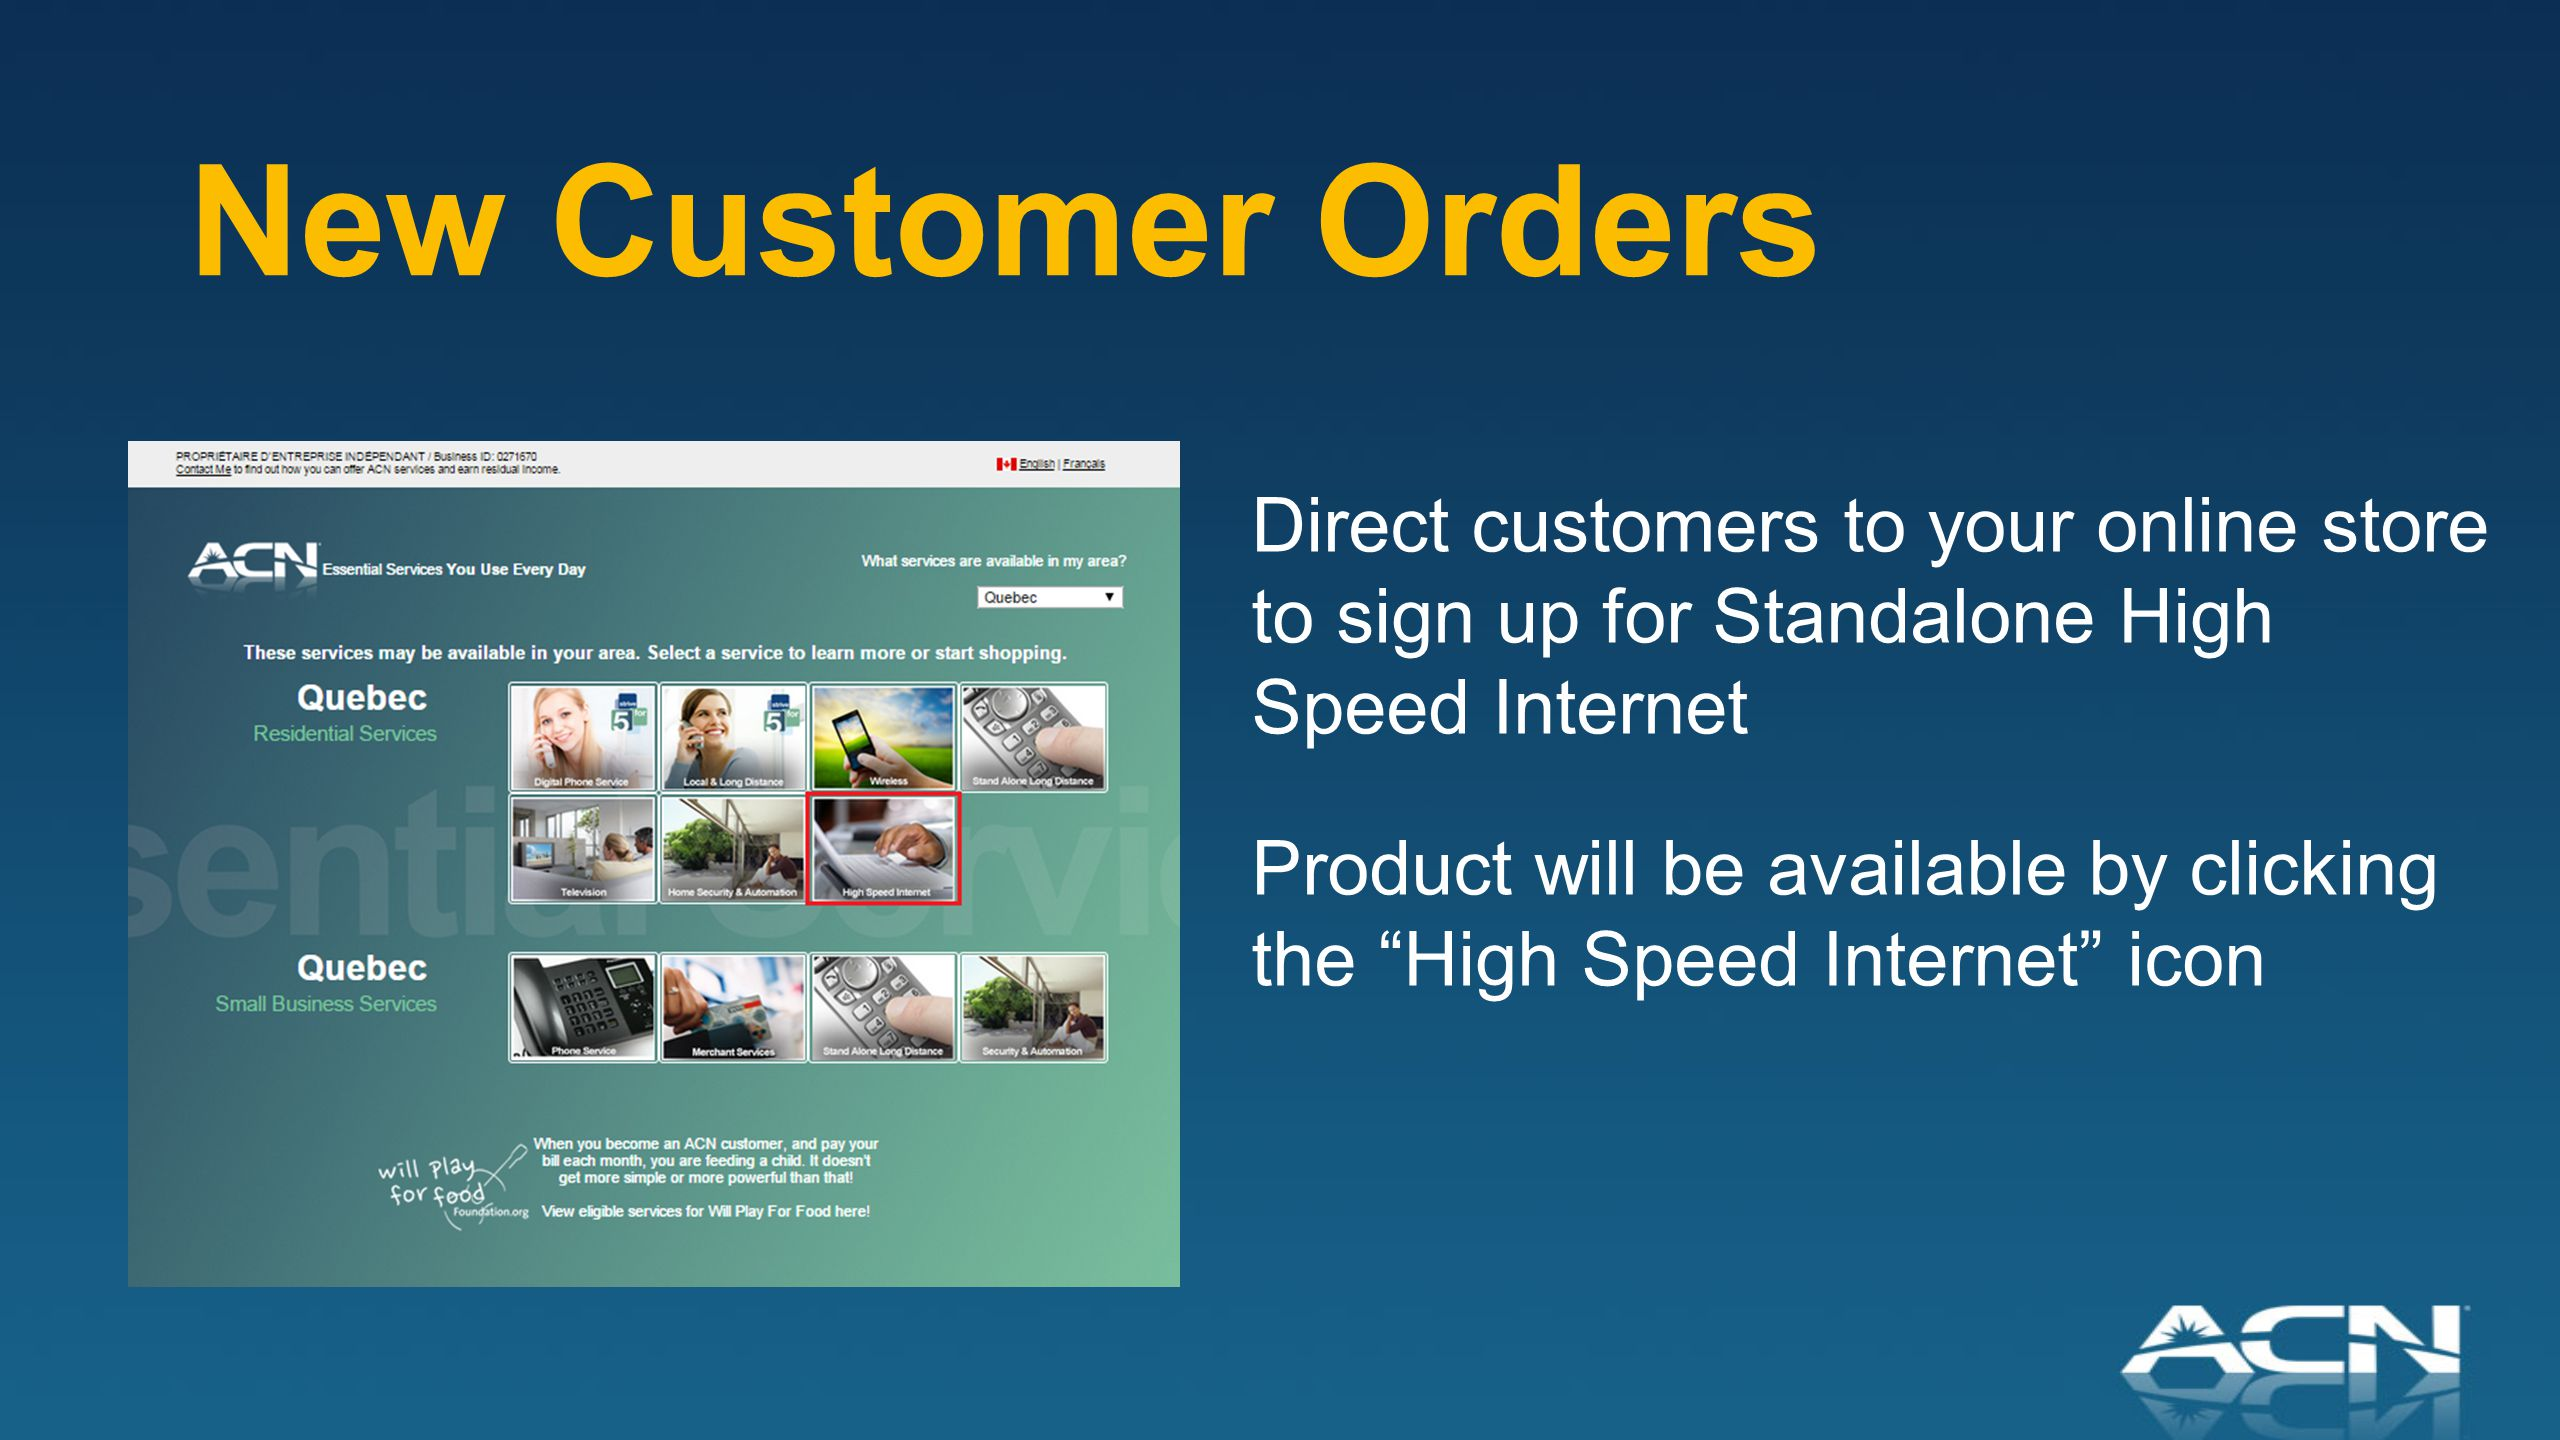 New Customer Orders Direct customers to your online store to sign up for Standalone High Speed Internet Product will be available by clicking the High Speed Internet icon